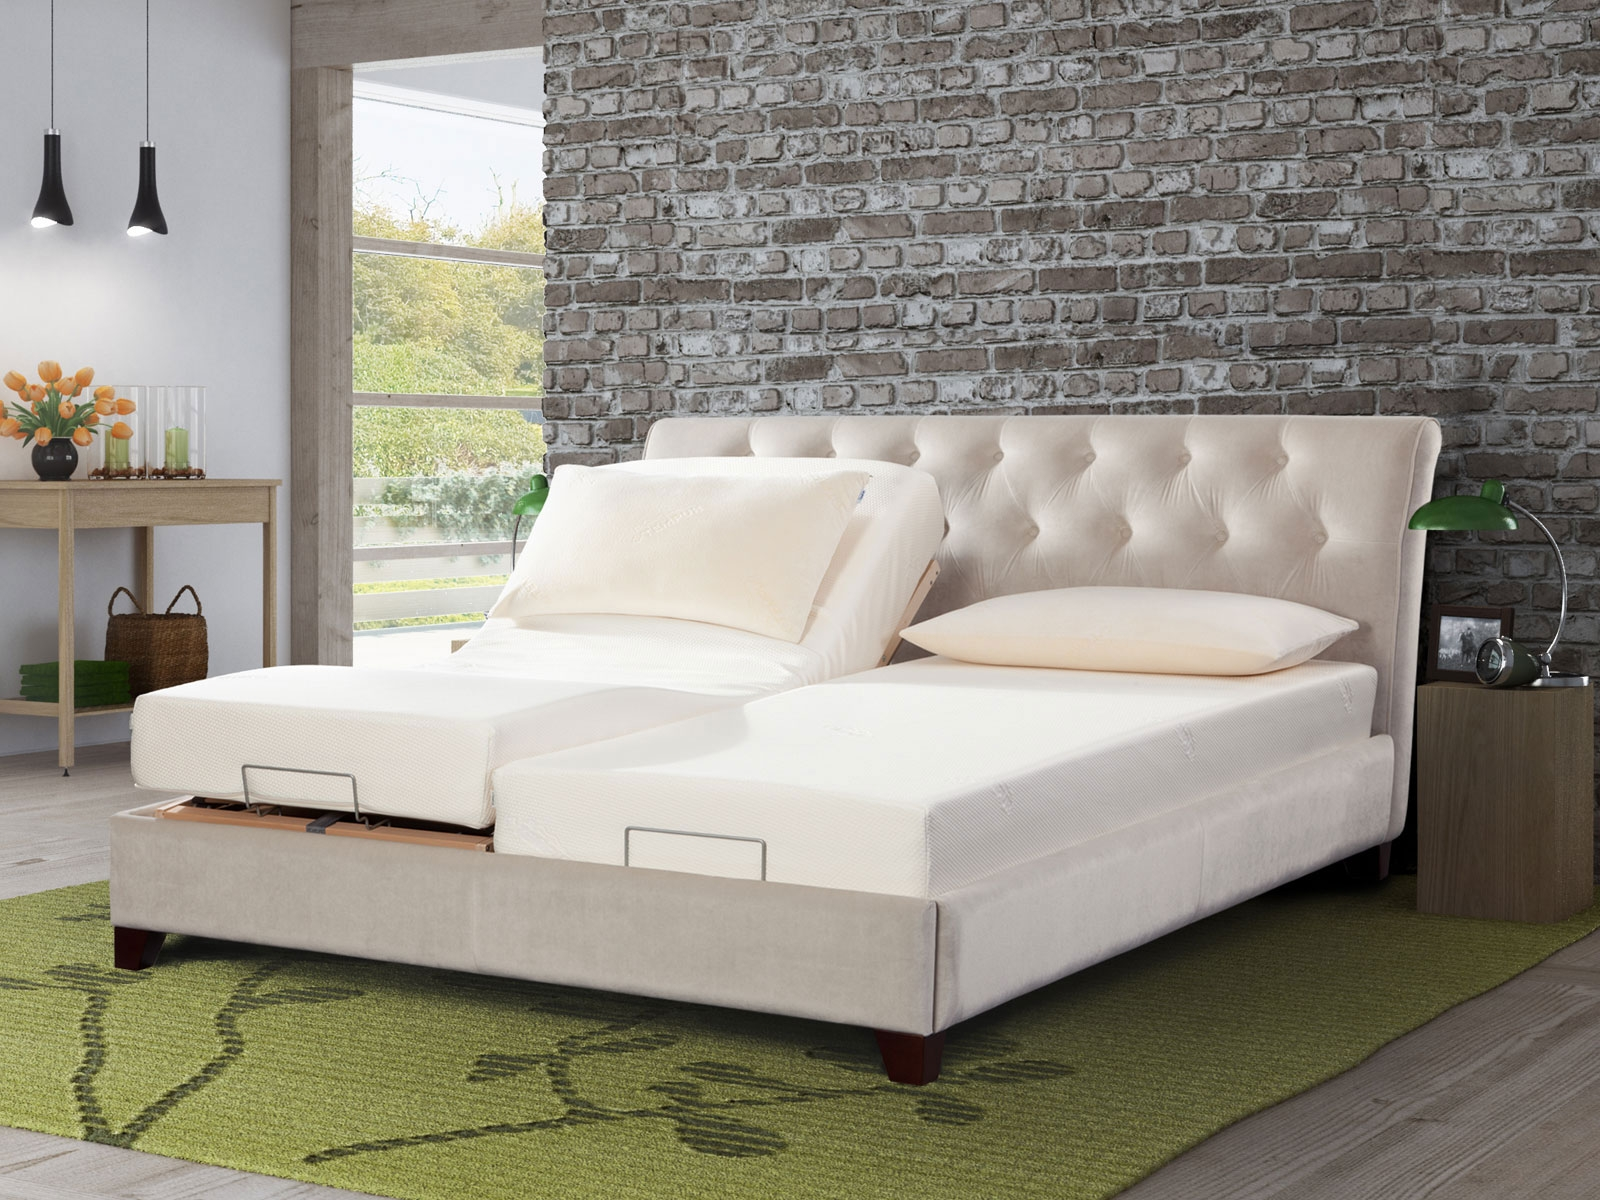 Bed Frames For Adjustable Beds Tempurpedic